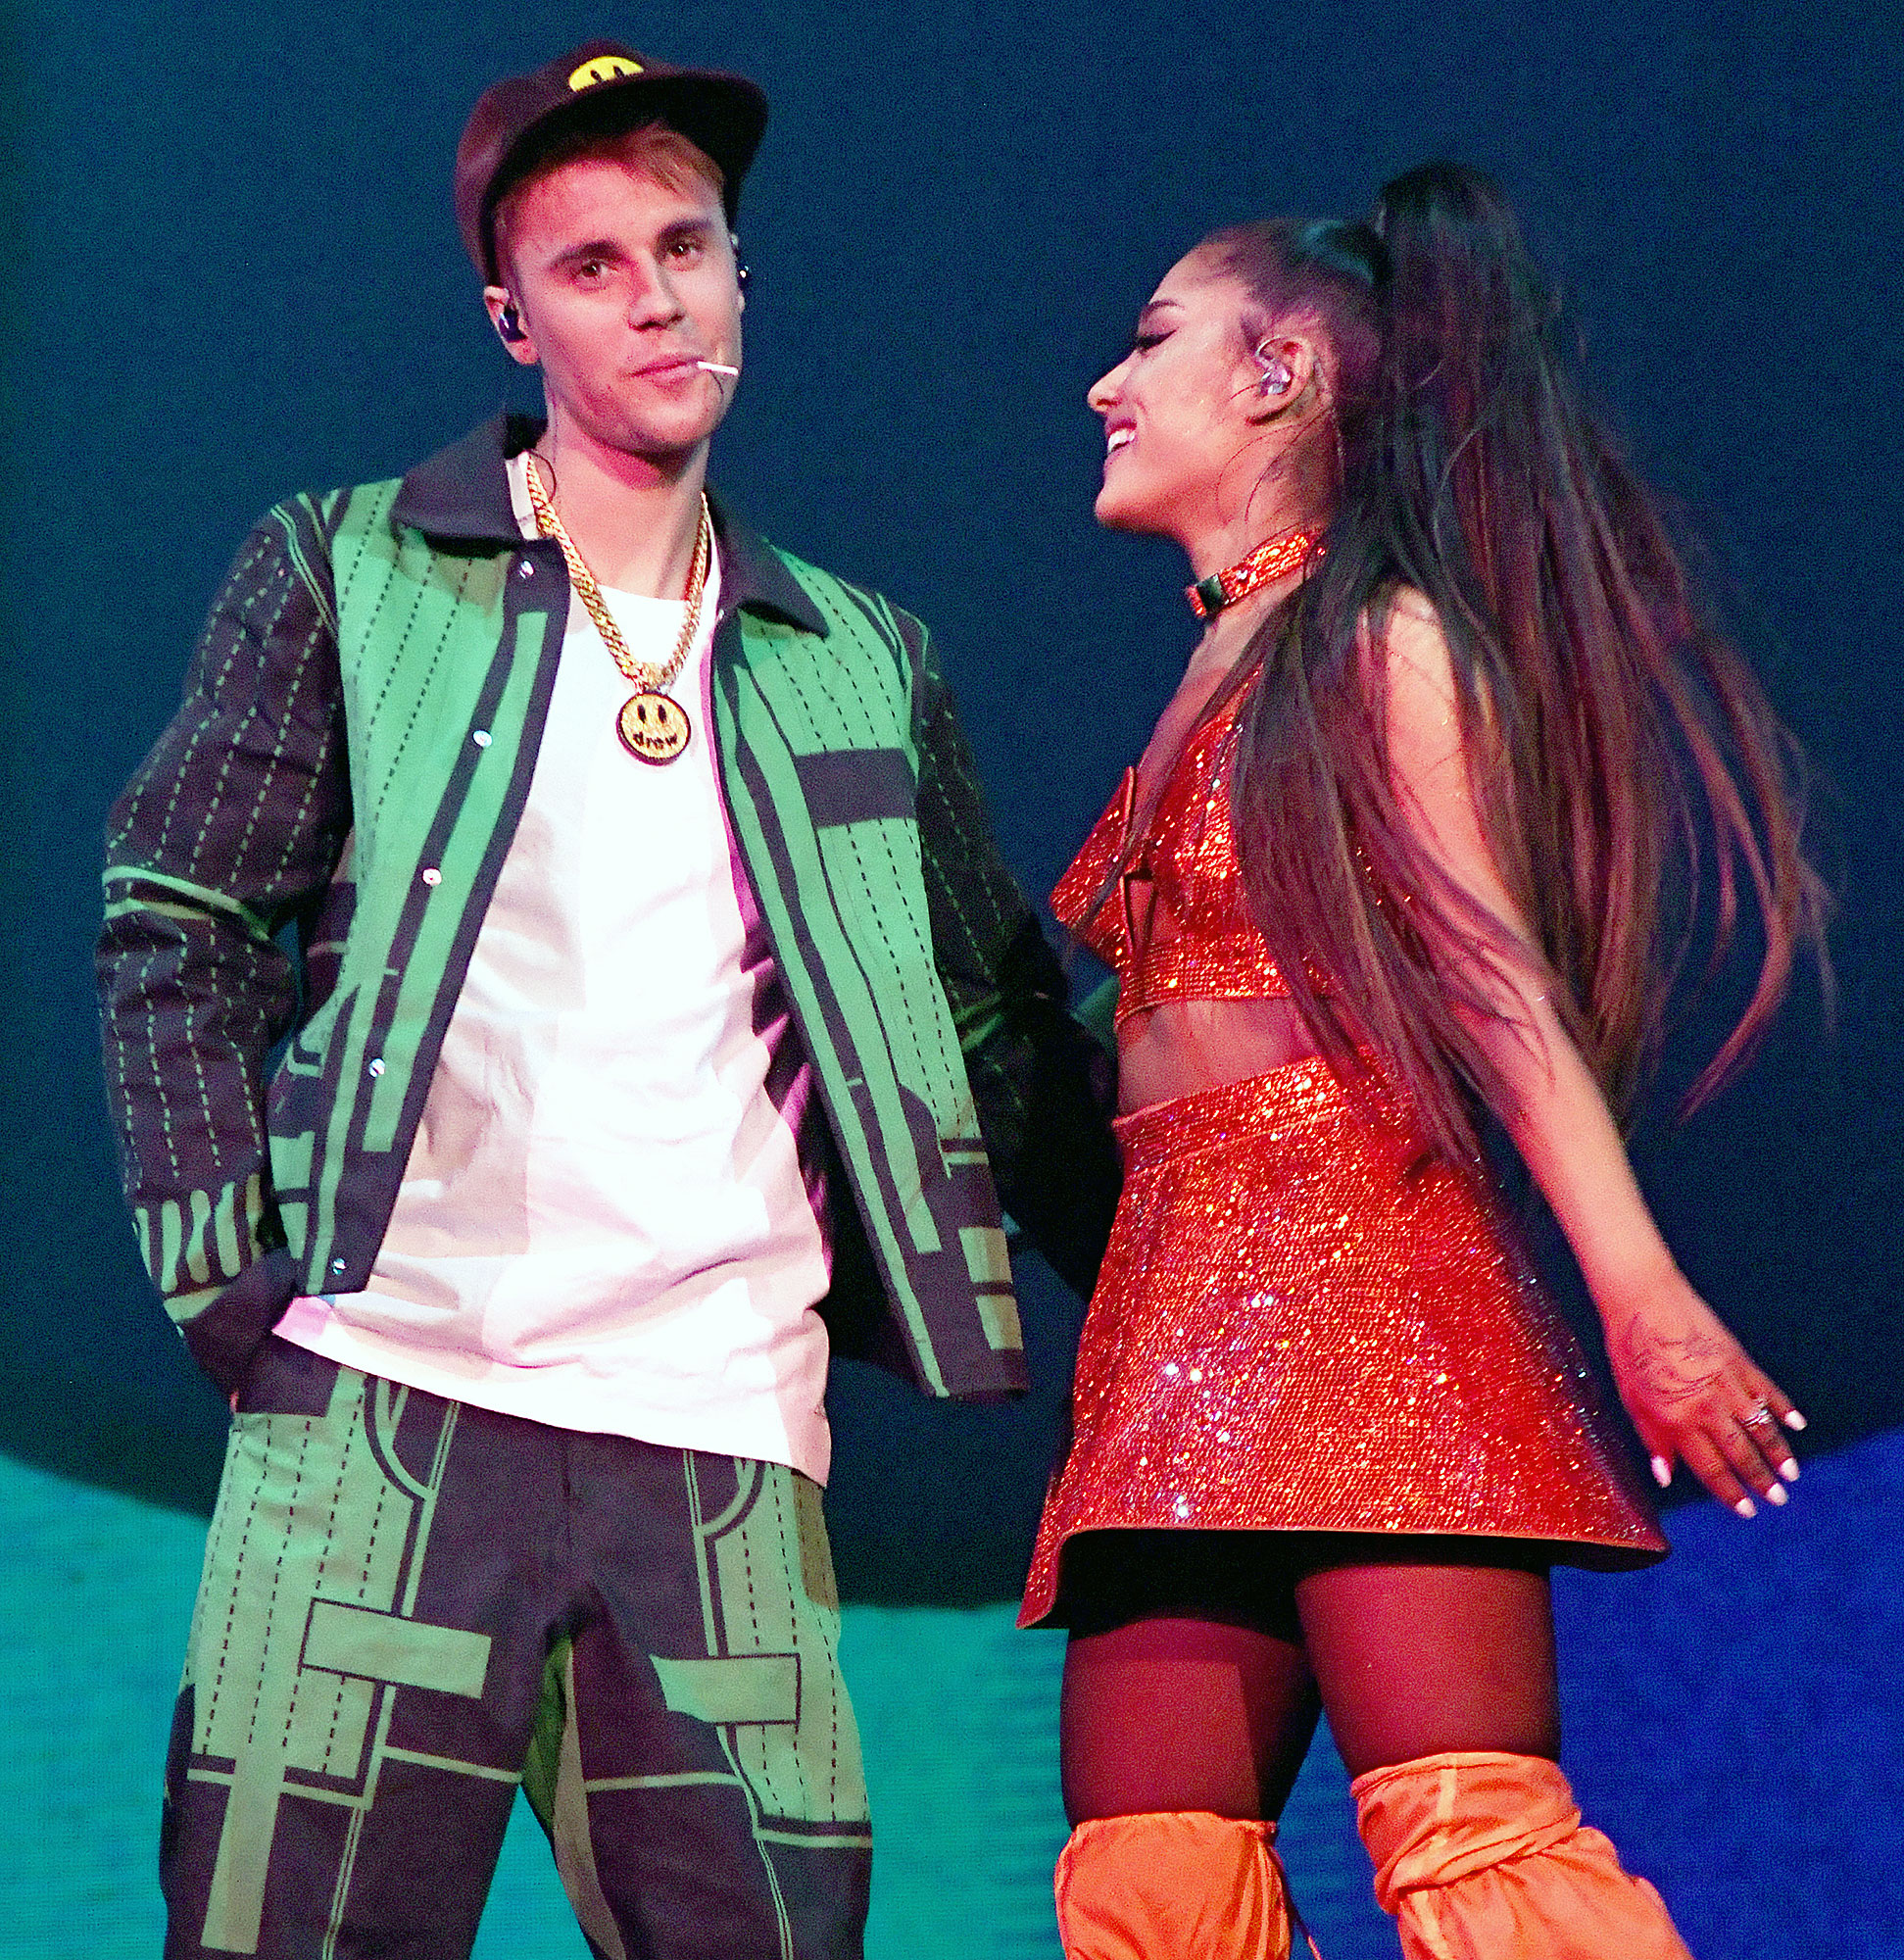 """Justin Bieber Ariana Grande Coachella 2019 - Bieber surprised fans by crashing Grande's set — and announcing his new album — during the second weekend of the music festival. """"I had to get my groove back, I had to get my swag back, you know what I'm saying? So, thank you so much, Coachella. Thank you so much, Ariana Grande,"""" Bieber told the crowd after performing his hit """"Sorry"""" with the pop star."""